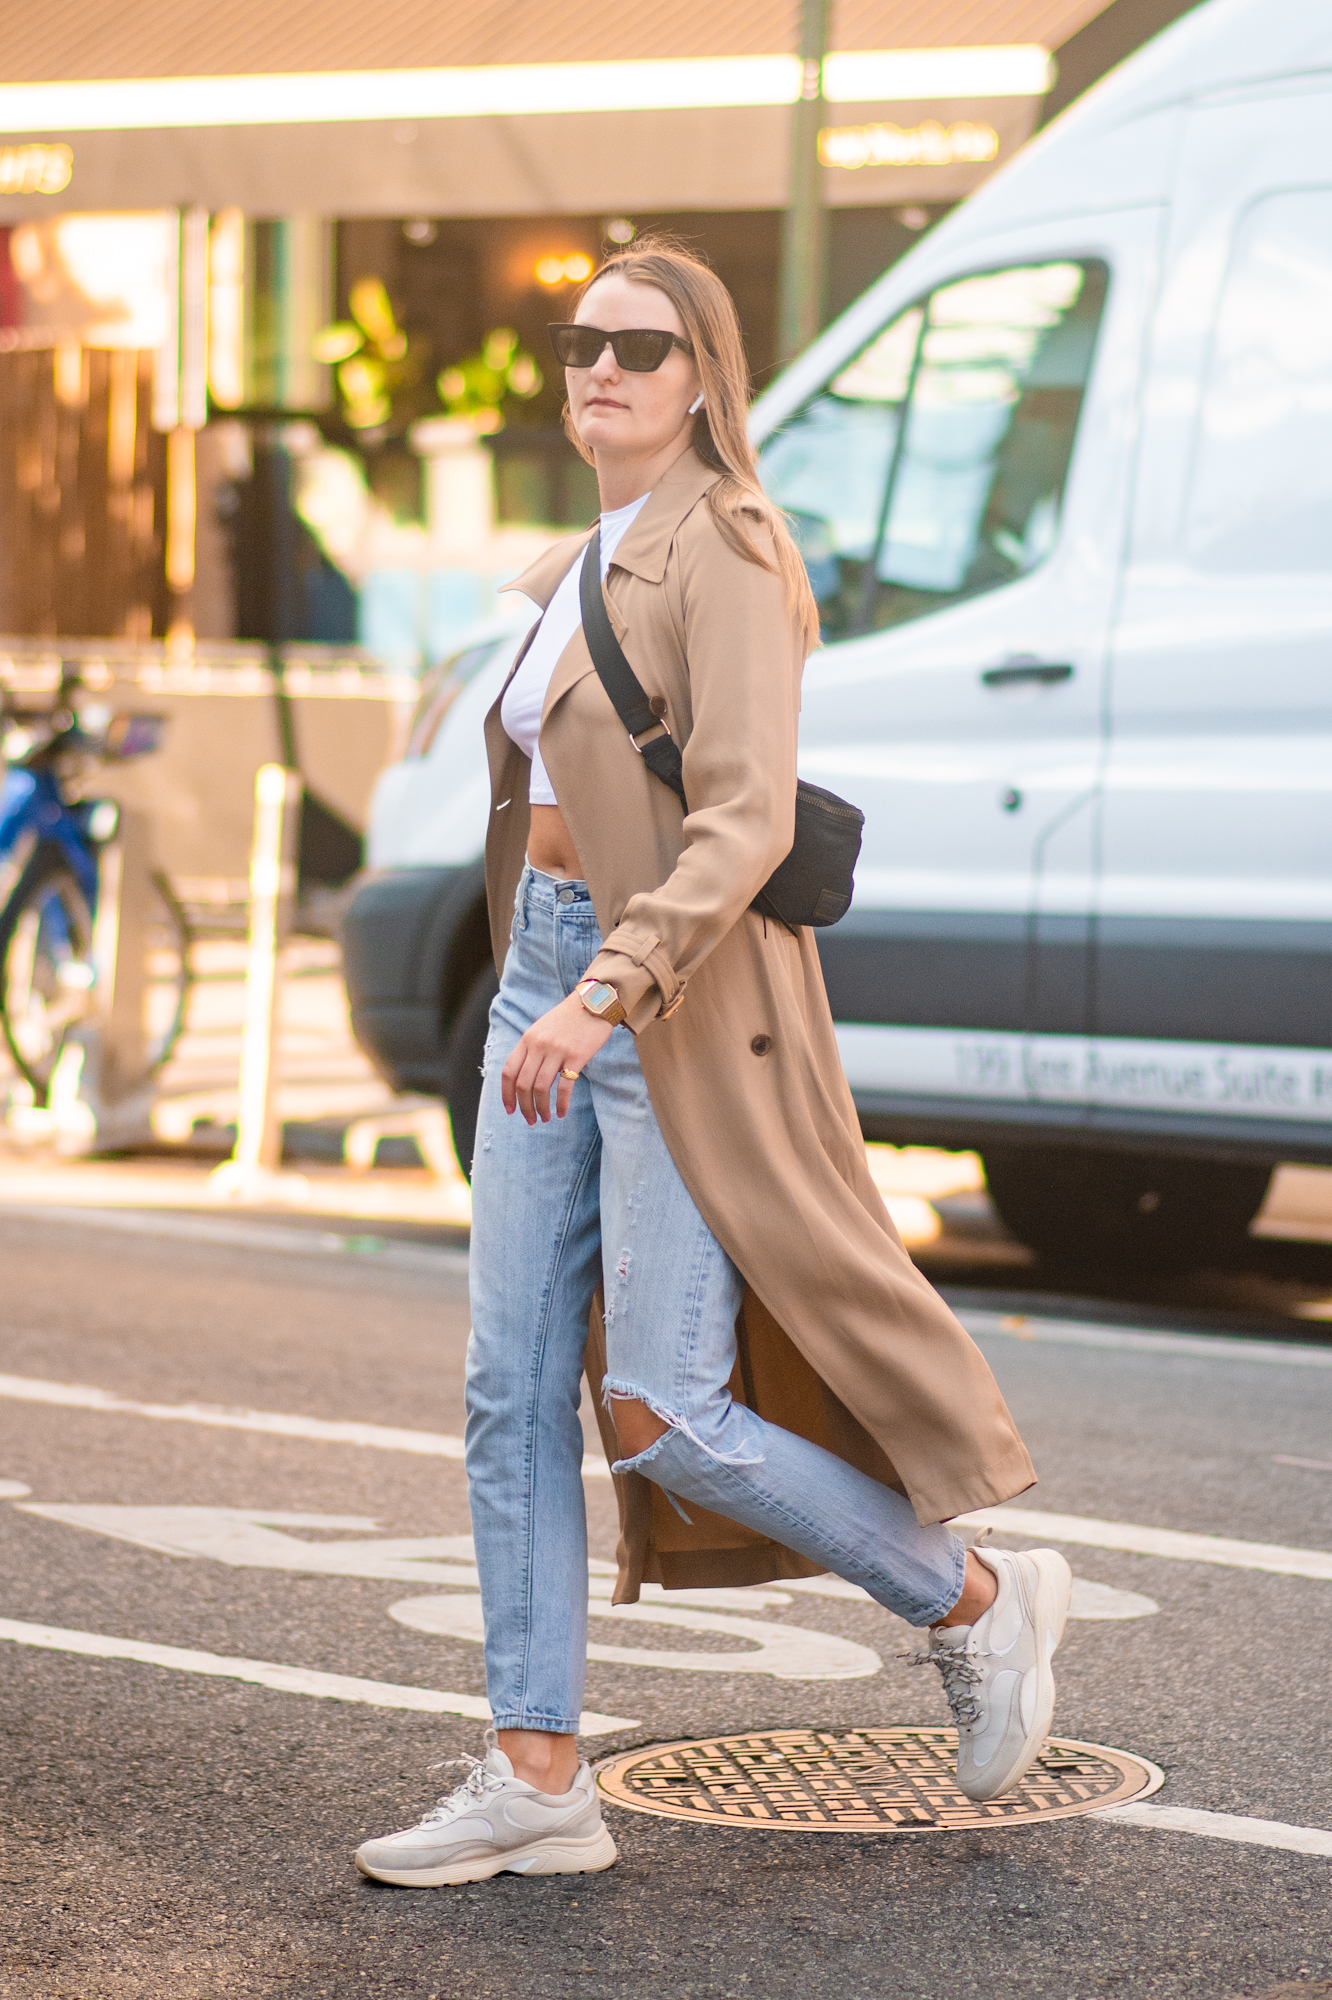 NYC street style fall outfit idea - woman wearing tan trench coat and straight leg jeans- Karya Schanilec NYC fashion photographer